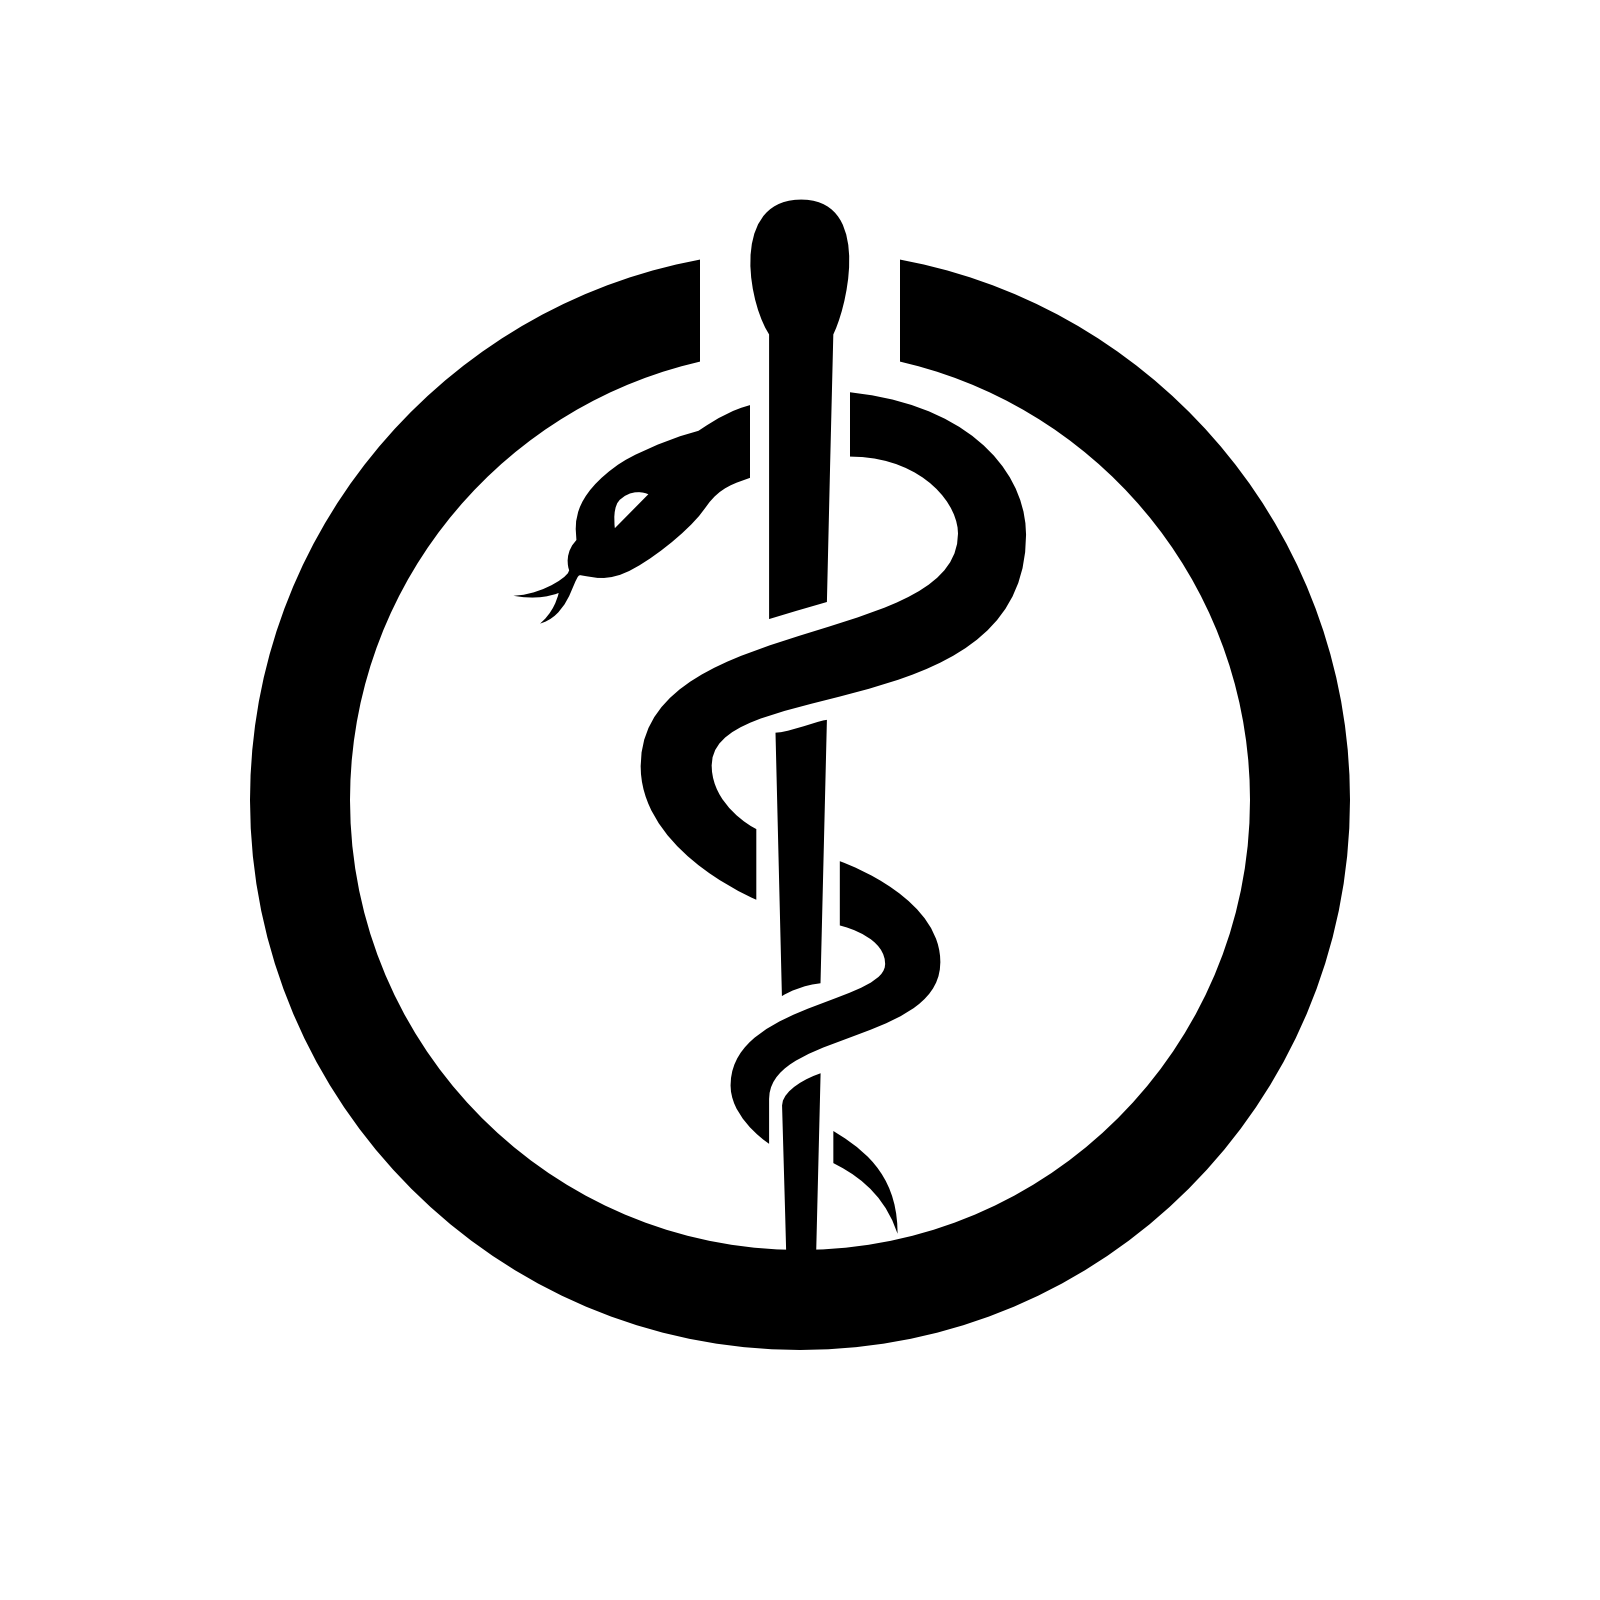 World Health Organization Icon.